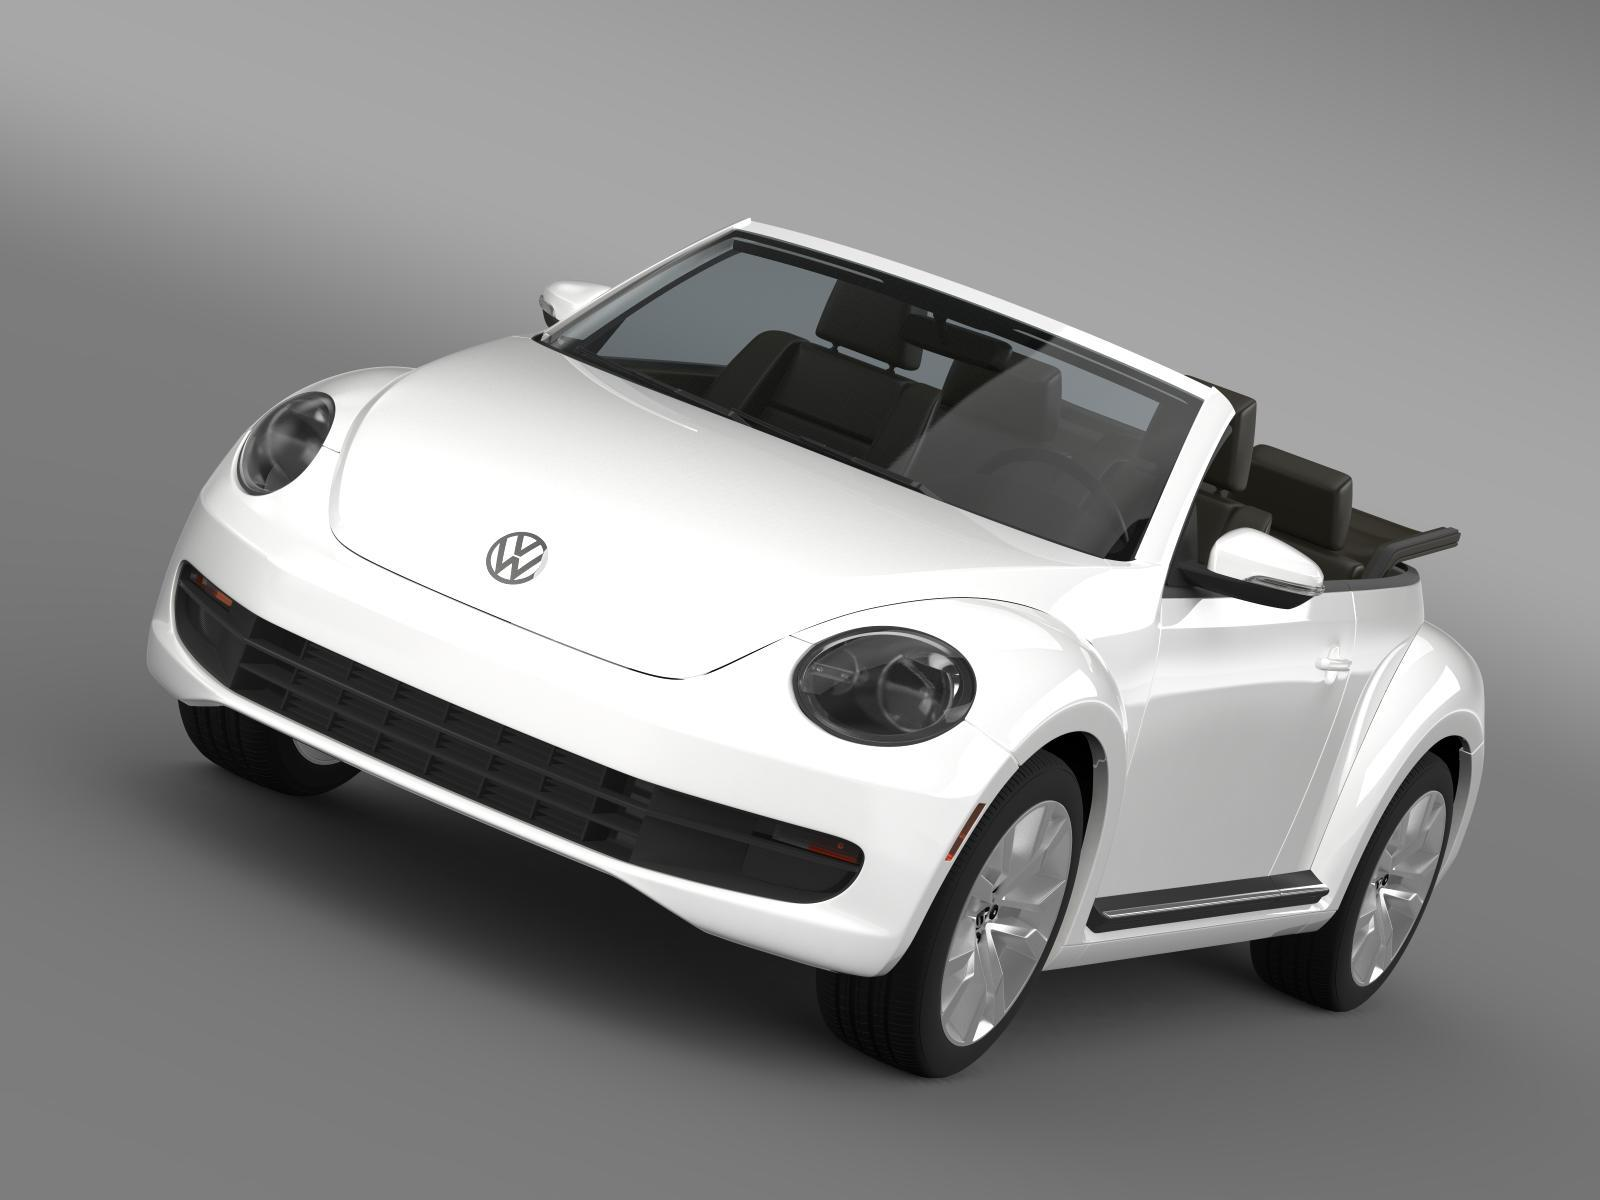 photos original driver stylistic and mini get news volkswagen hardtop beetle updates convertible photo car s info